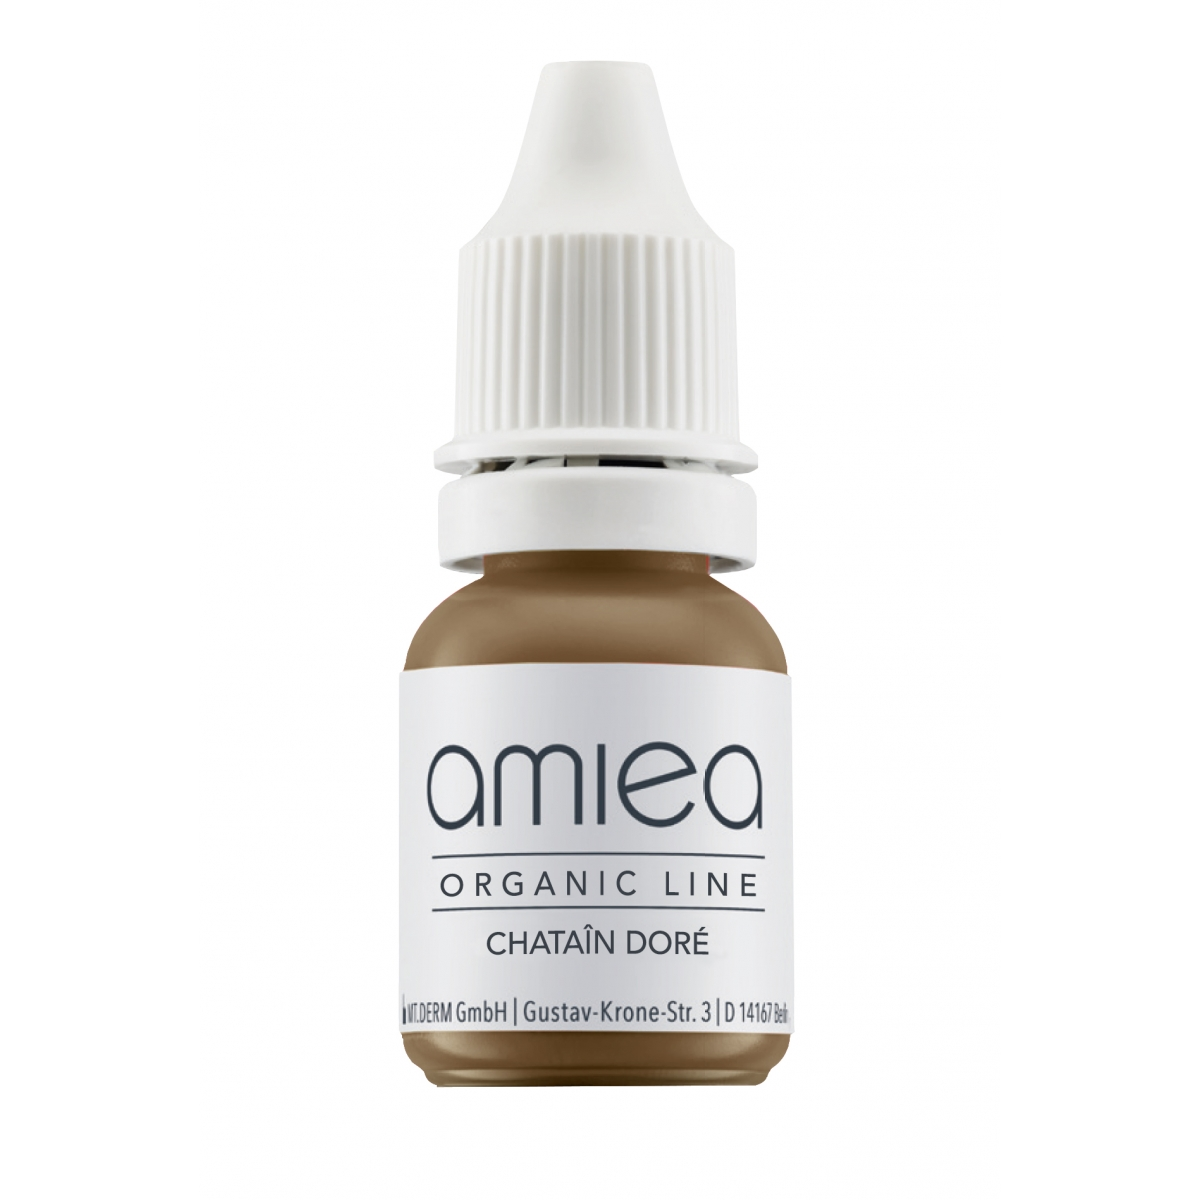 ORGANIC LINE (10ml) - PIGMENT CHATAIN DORE ORGANICLINE AMIEA (10 ml)